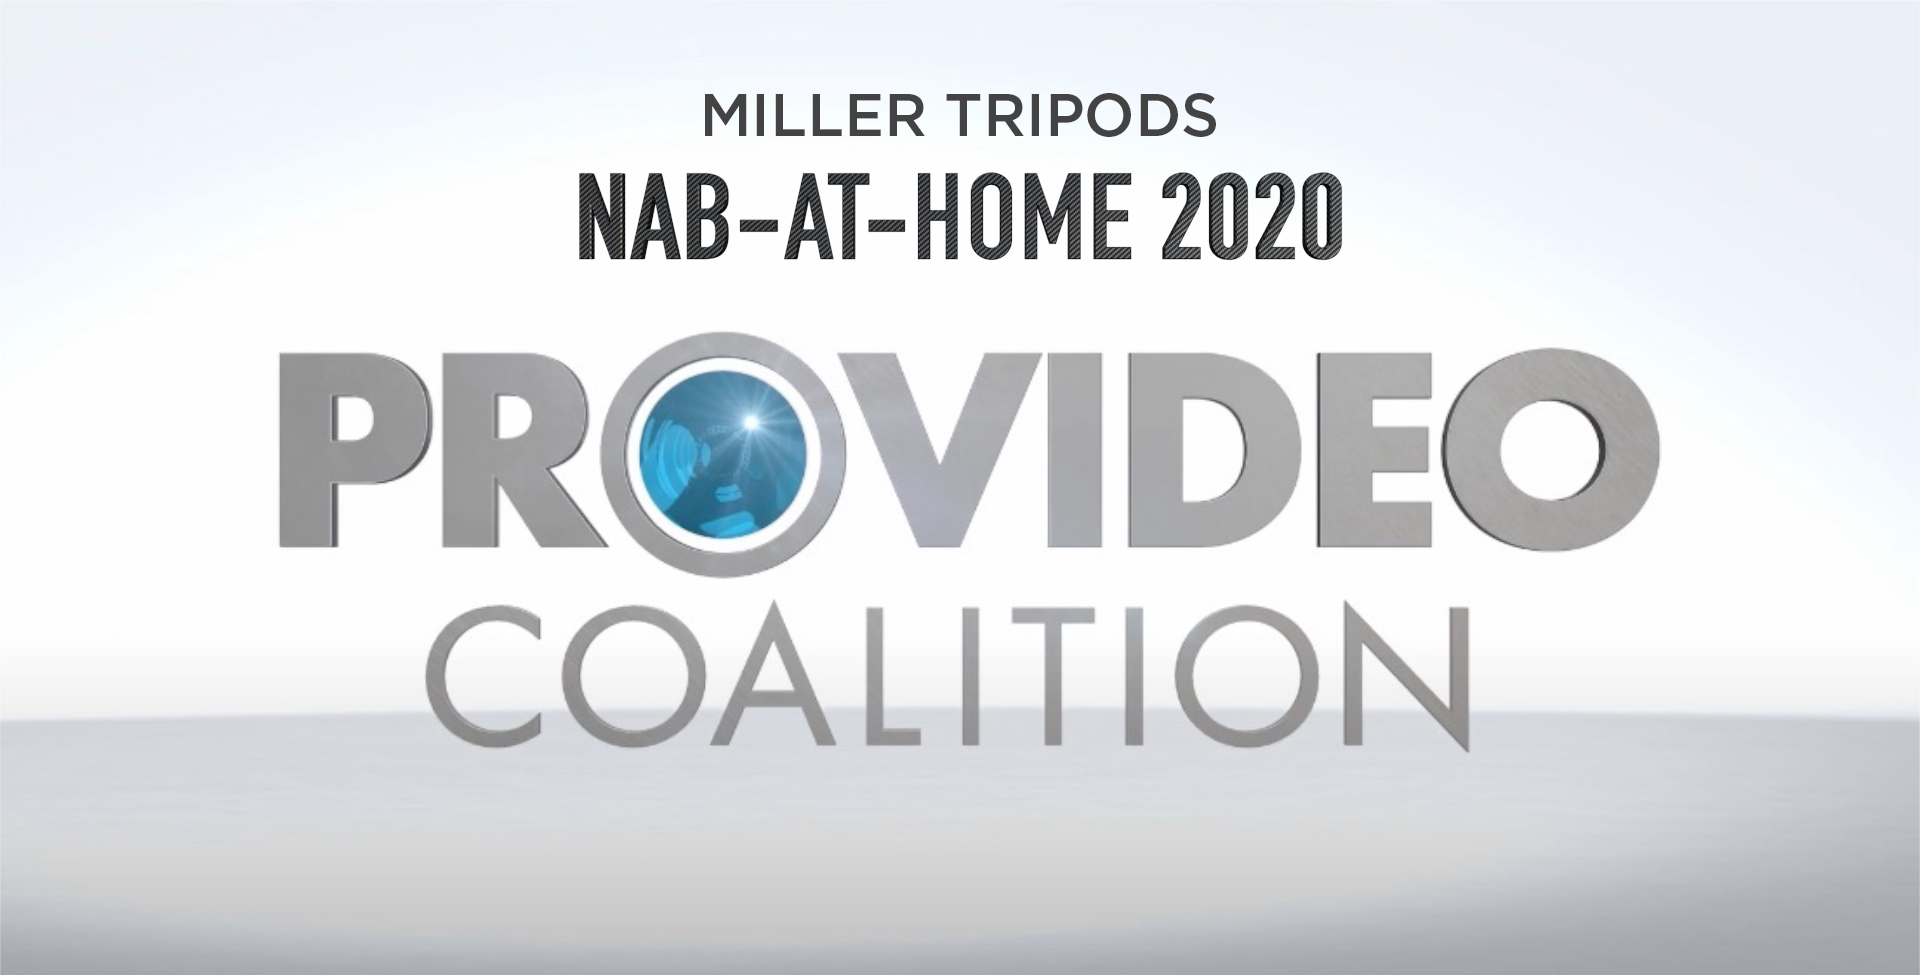 nab-at-home-2020millertripods